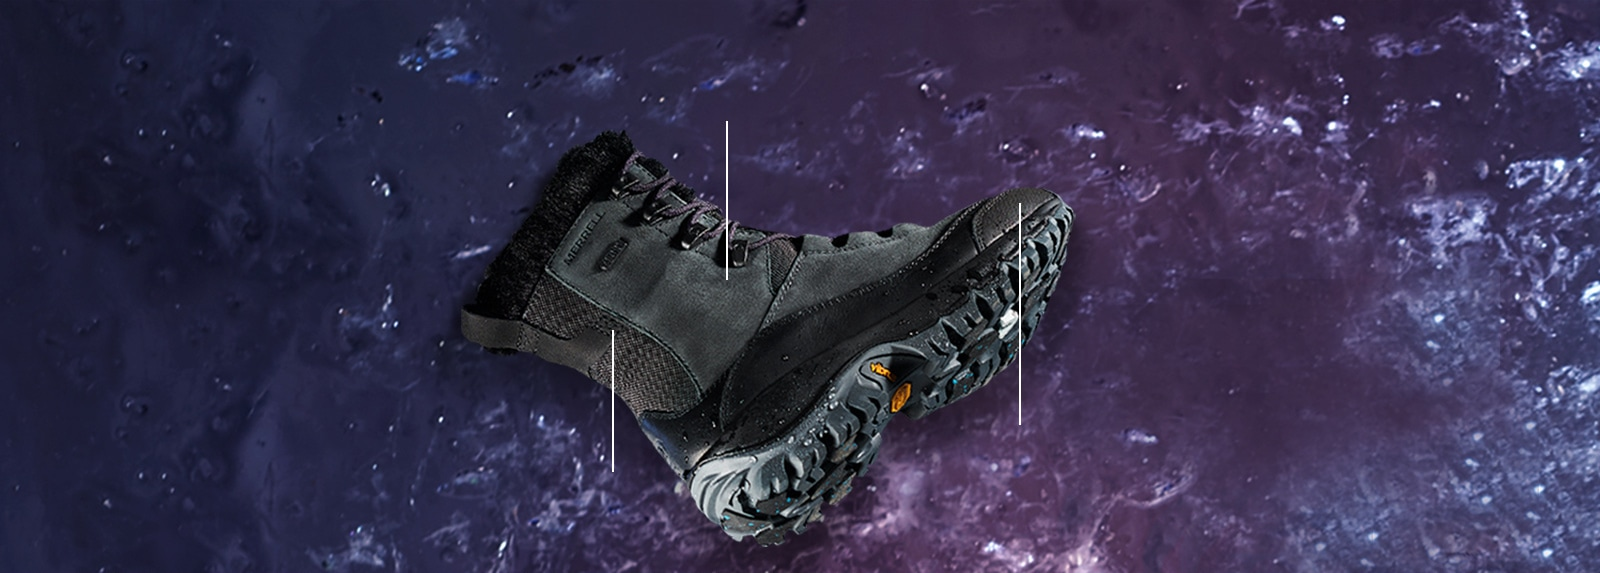 Merrell Thermo Rhea boot over a purple moon-like background